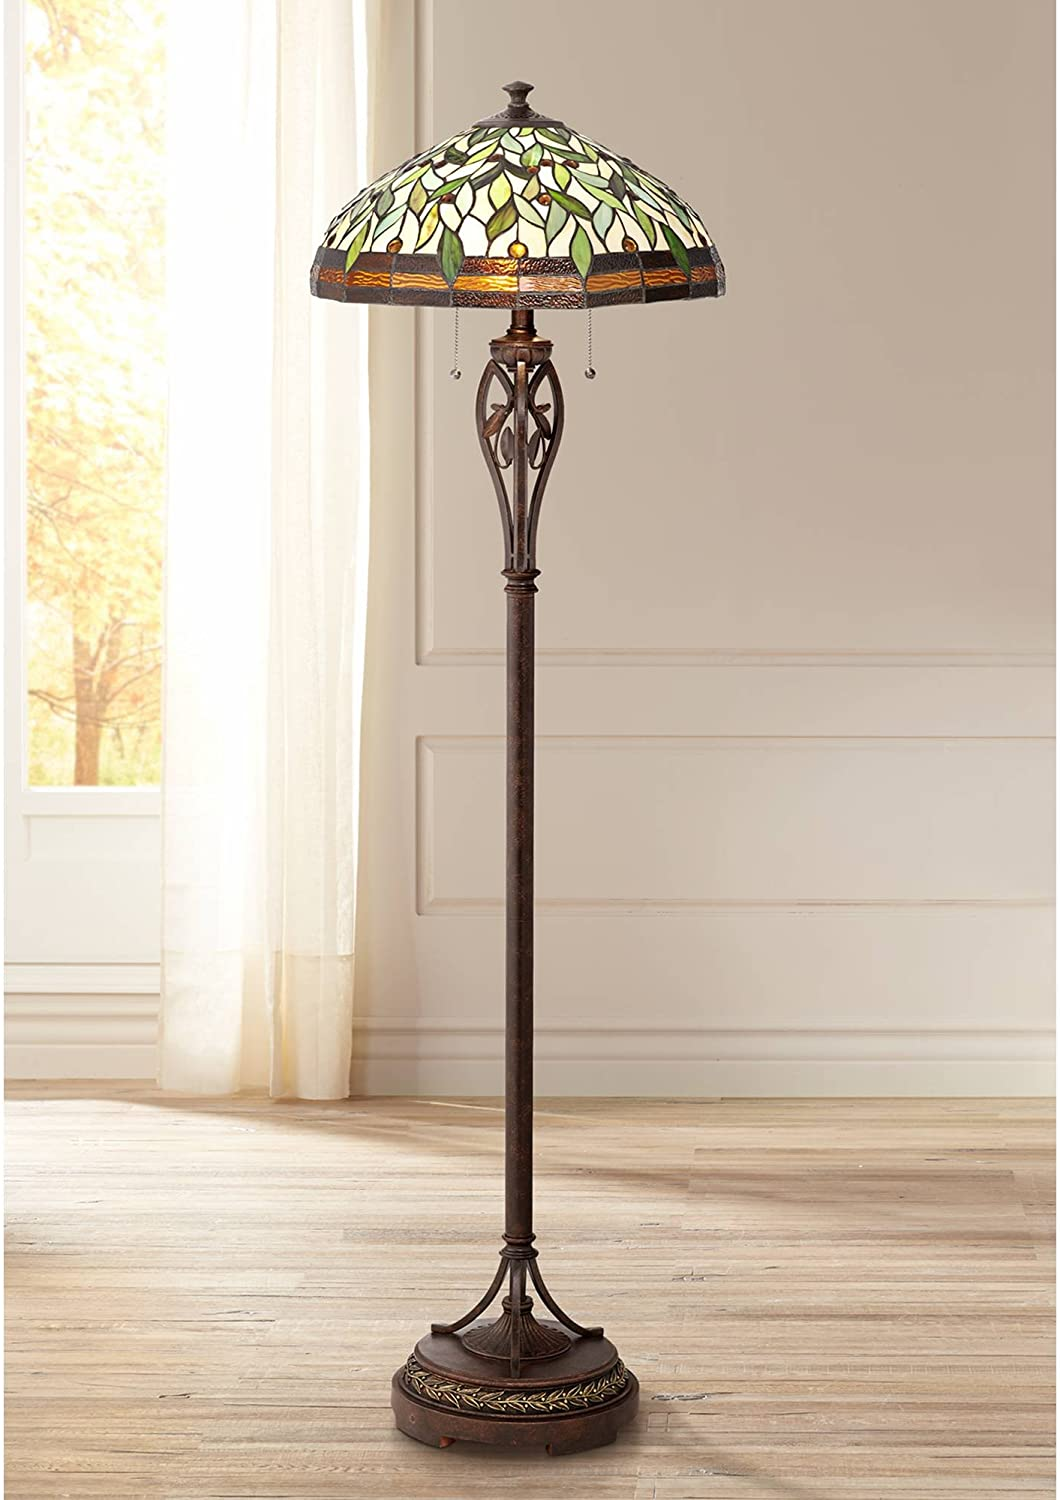 Perfect tiffany style floor lamps for your home